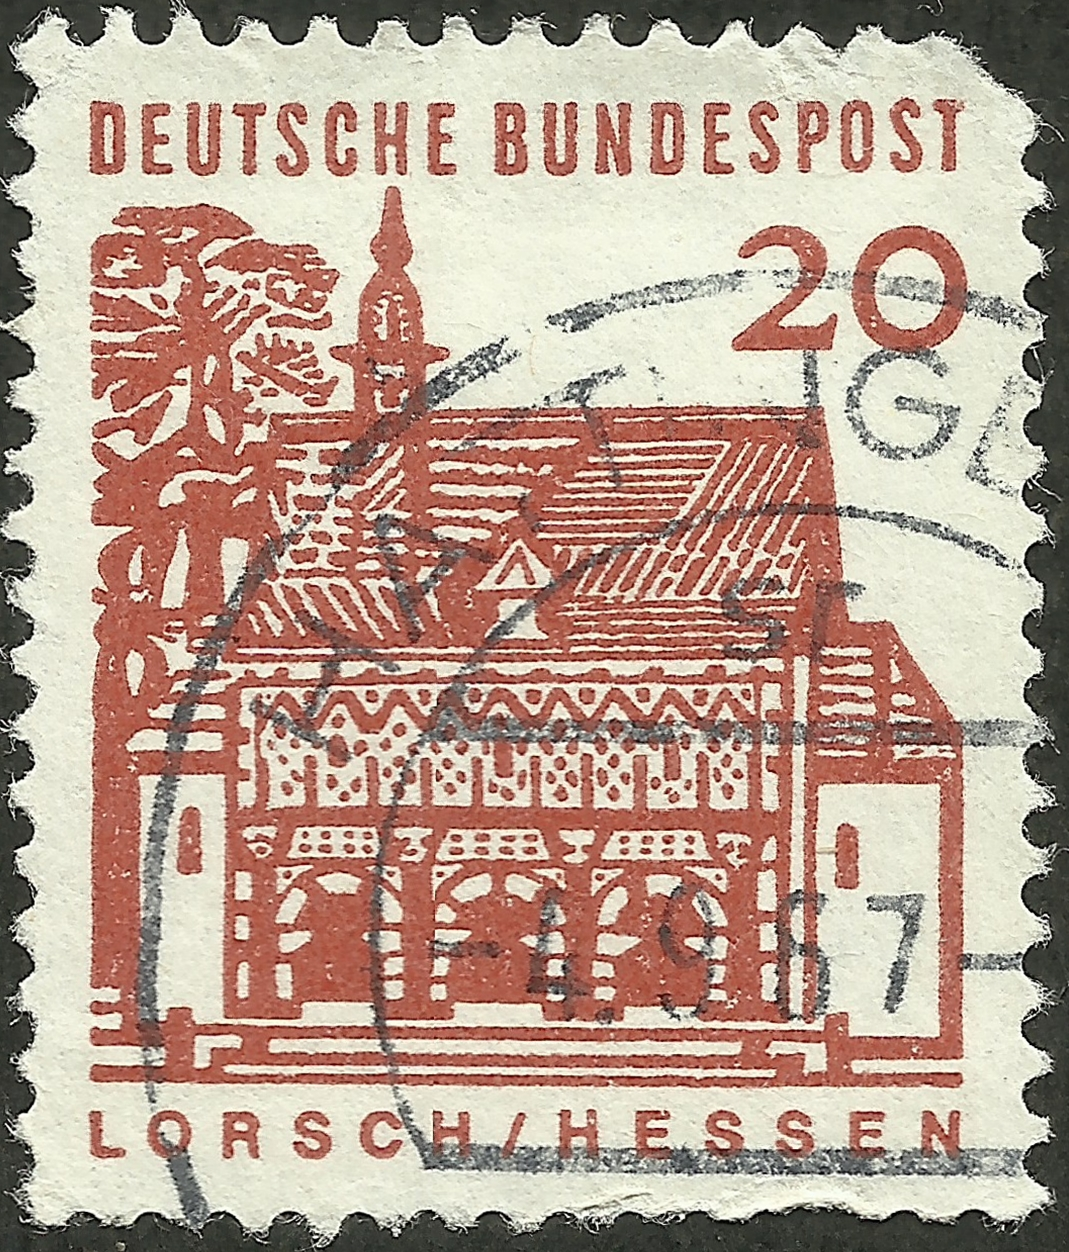 Federal Republic of Germany #905 (1965) postmarked 4 September 1967